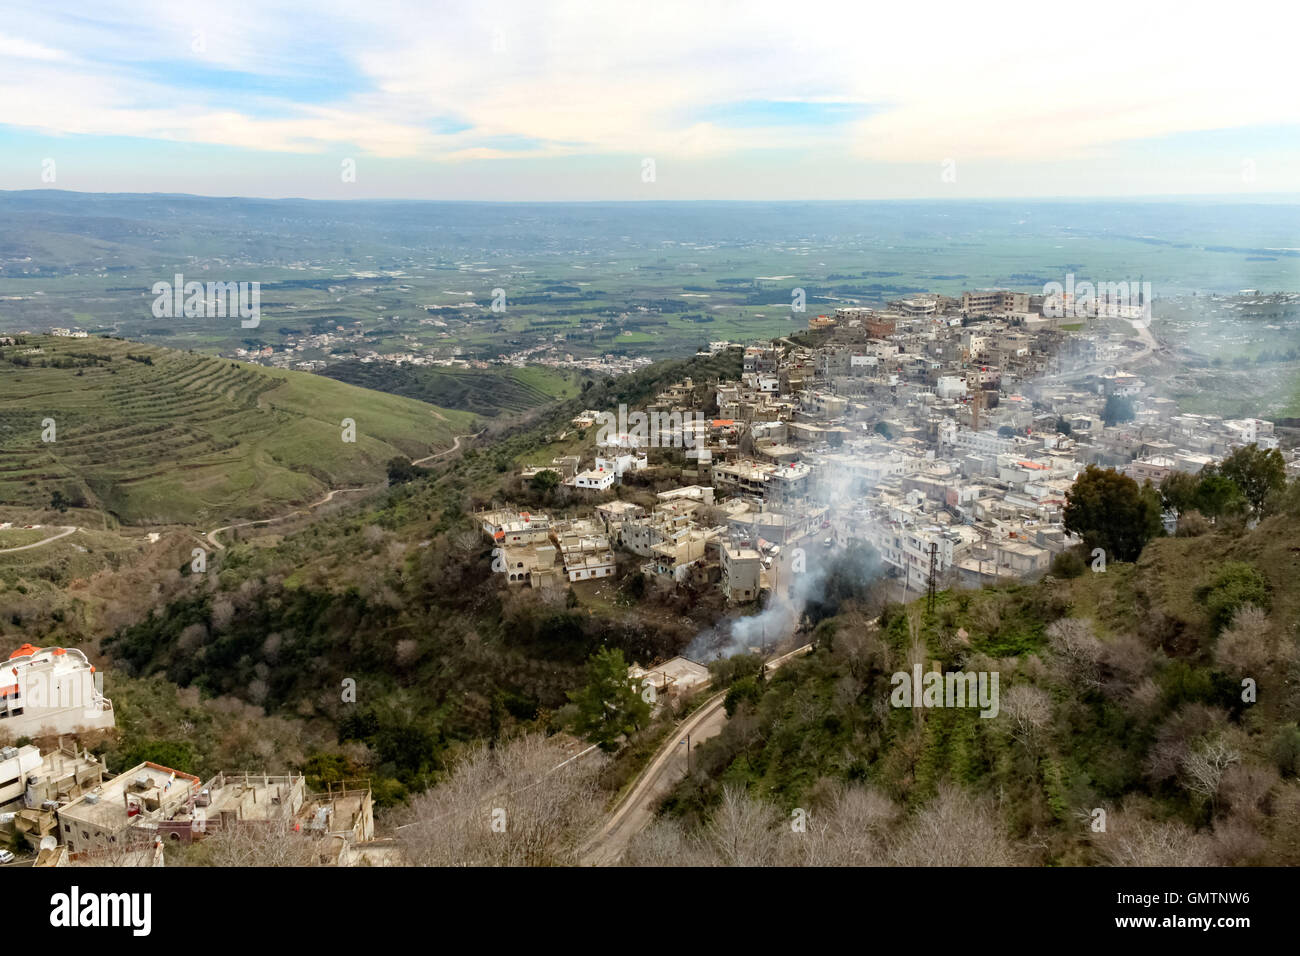 View from Krak des Chevaliers - Stock Image